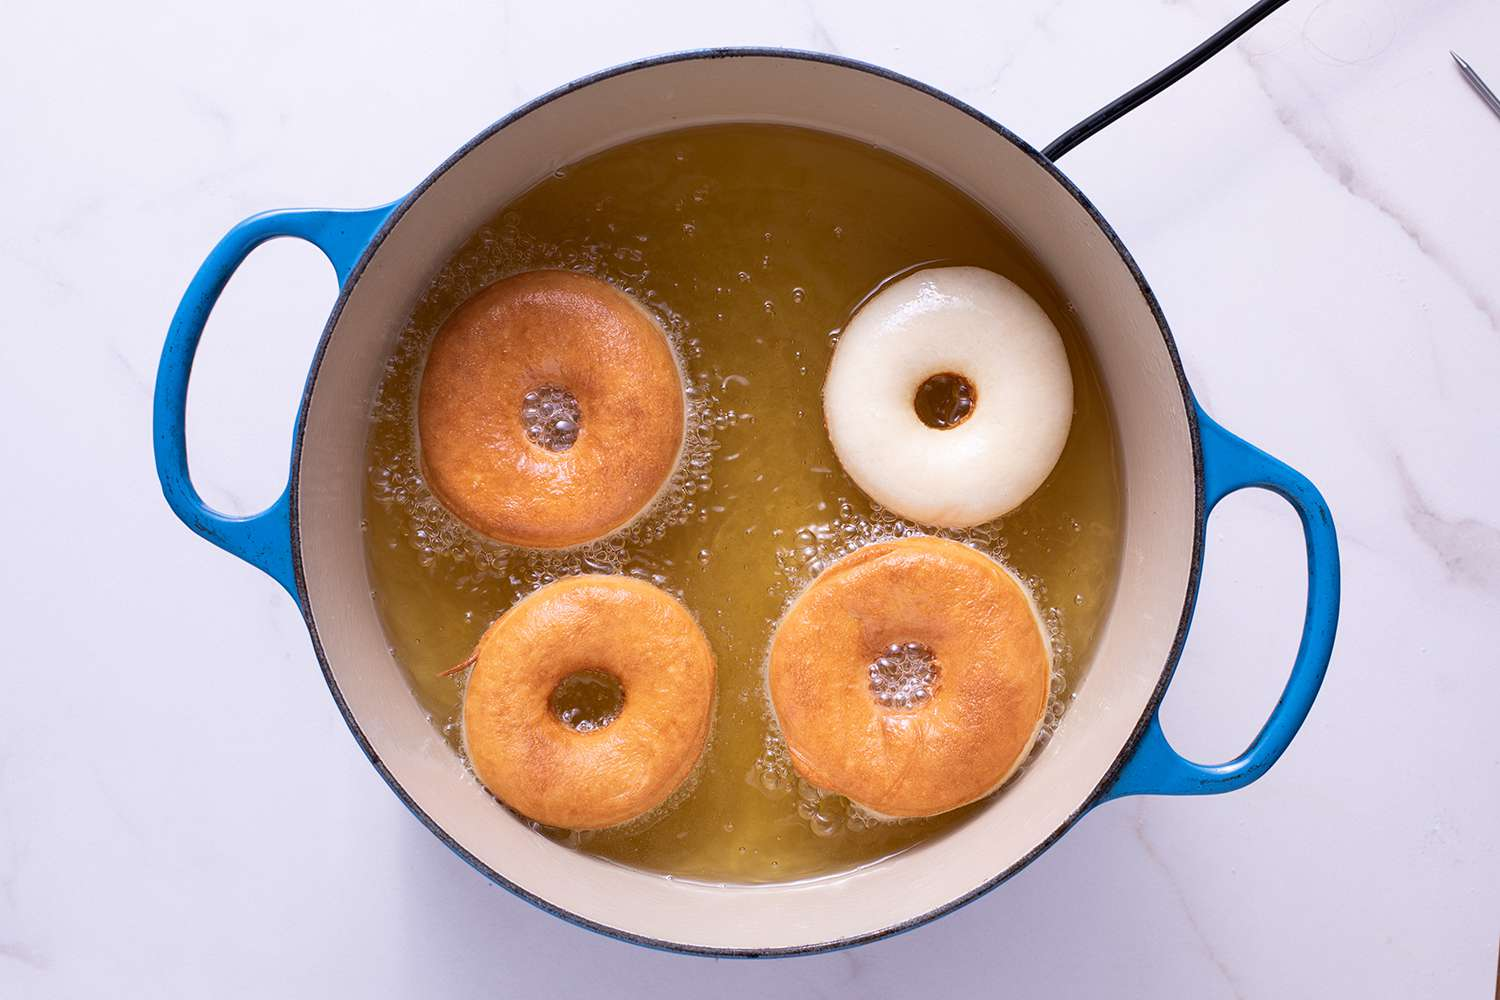 donuts frying in a pot of oil